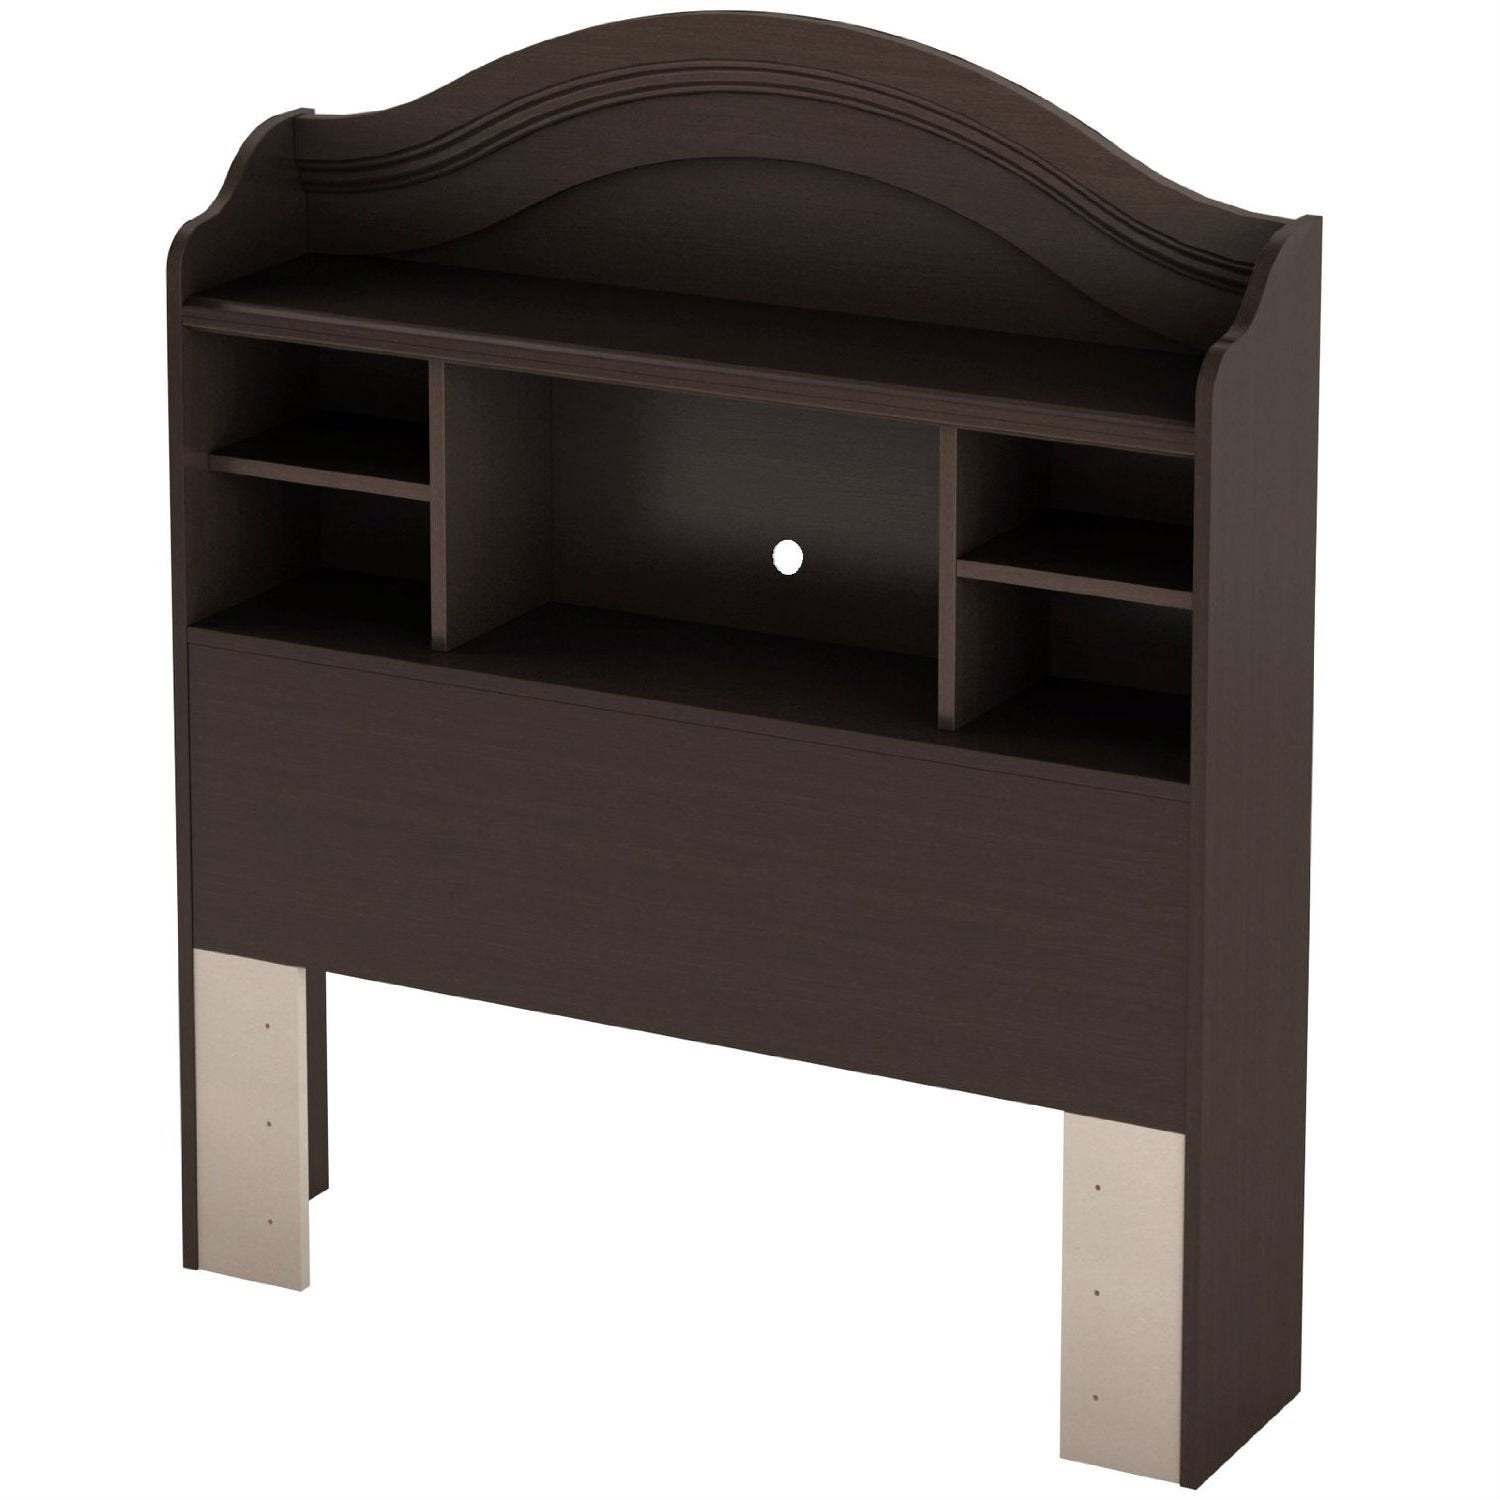 Twin size Arch Top Bookcase Headboard in Chocolate Finish